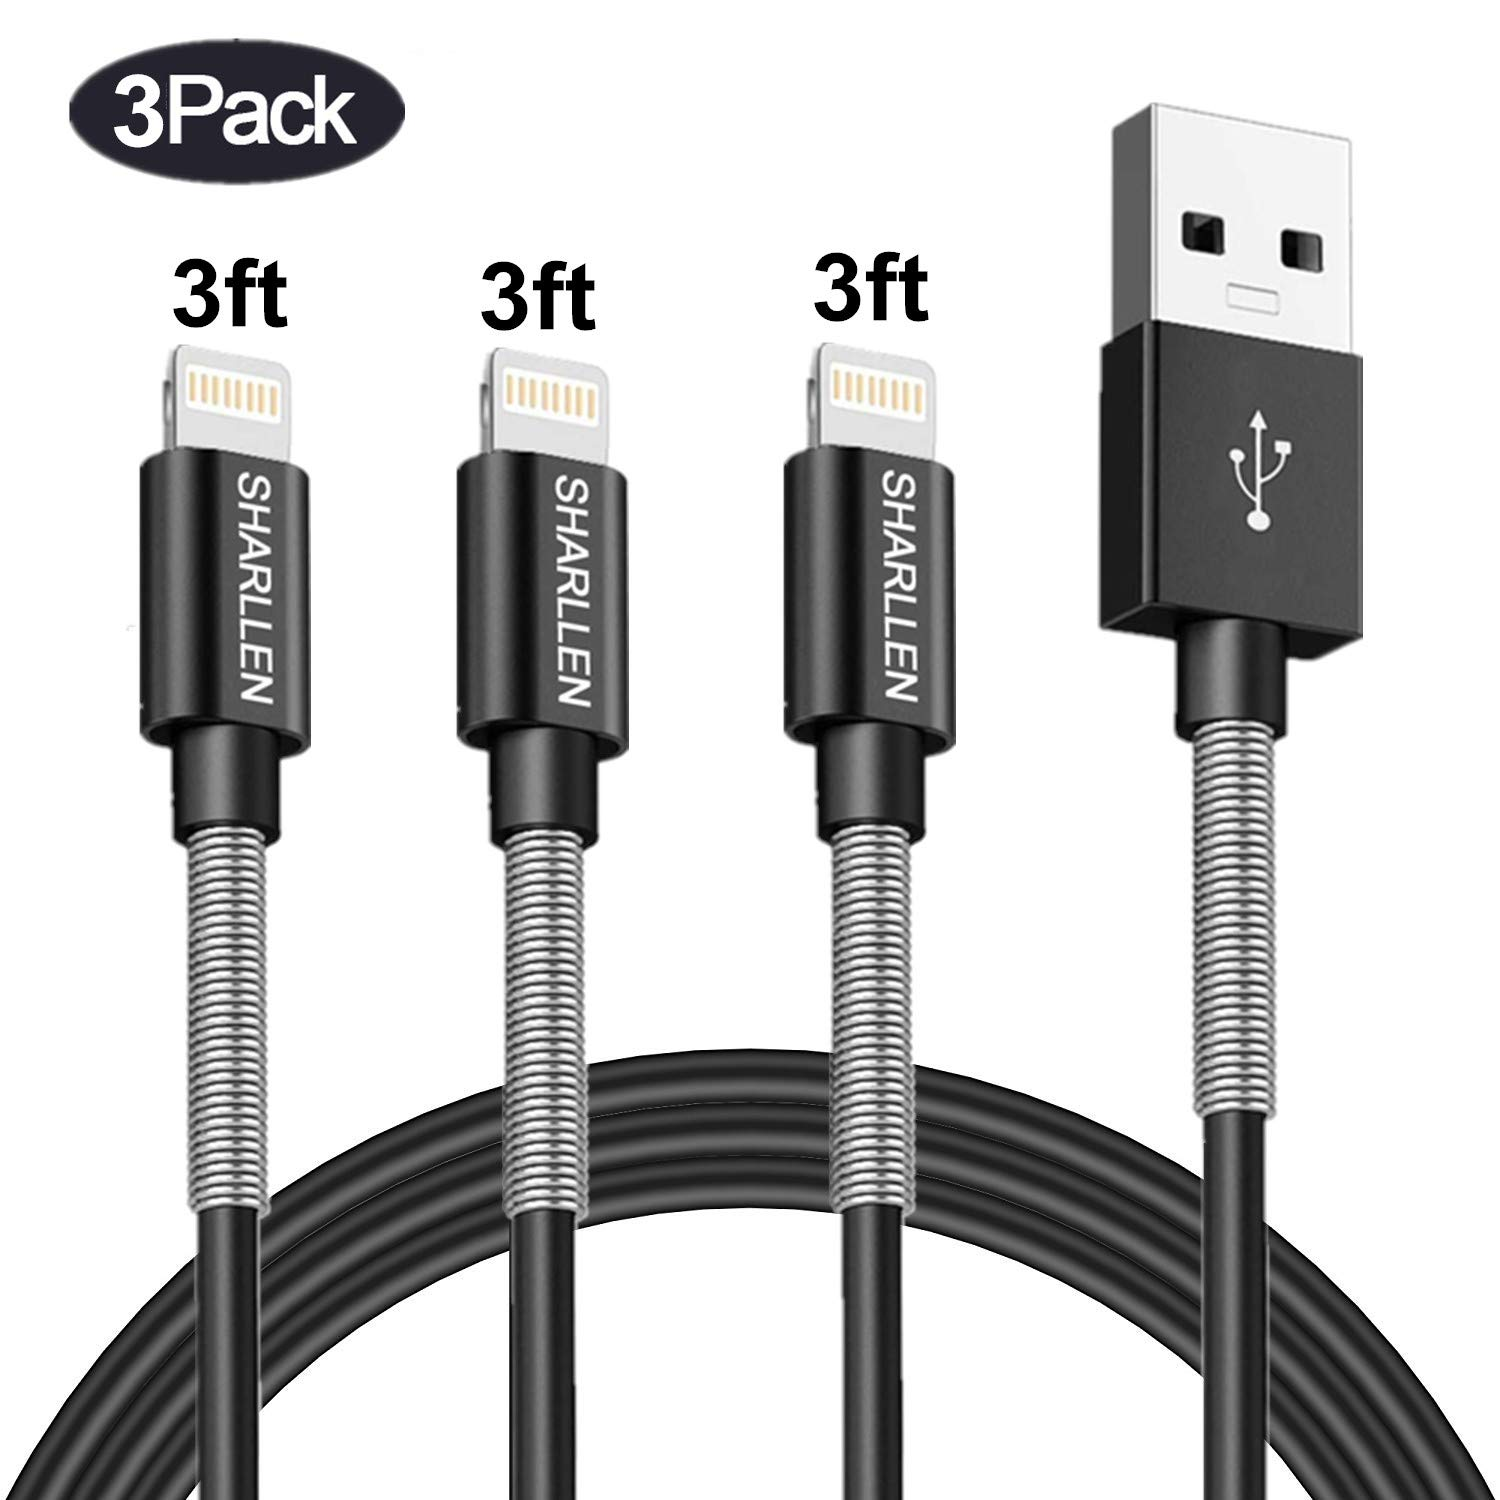 Lightning Charger Cable SHARLLEN MFi Certified Spring iPhone Charger Cable 3FT 3Pack Short iPhone Data Cable Wire USB Fast iPhone Charging Cord Compatible iPhone XS/MAX/XR/X/8/7/6/5/iPad/iPod(Black)